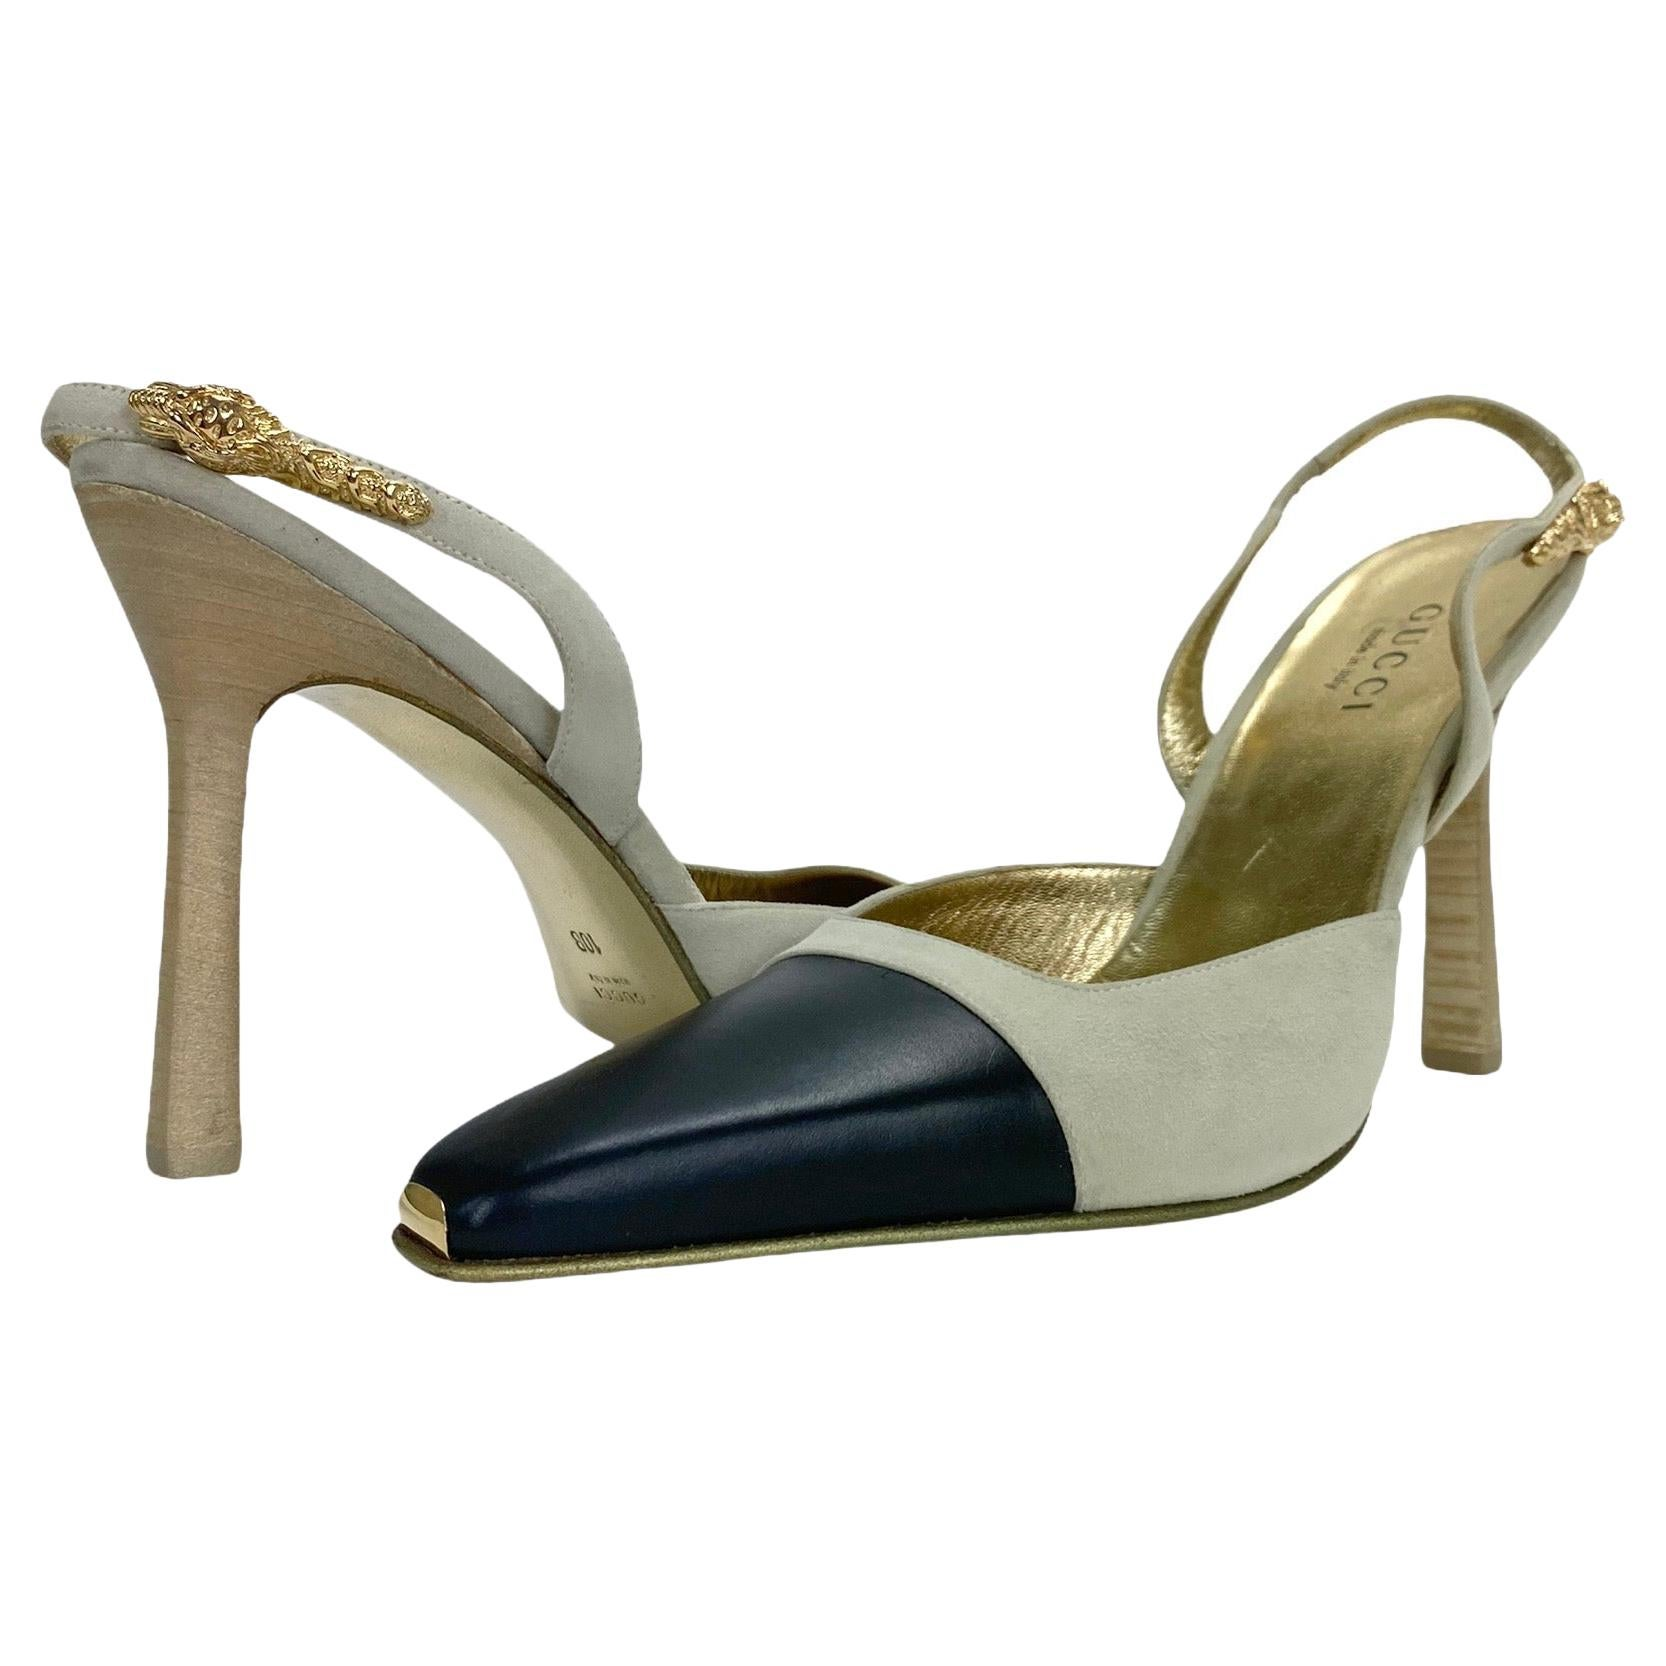 F/W 2000 Iconic Vintage Tom Ford for Gucci Shoes Size 10B